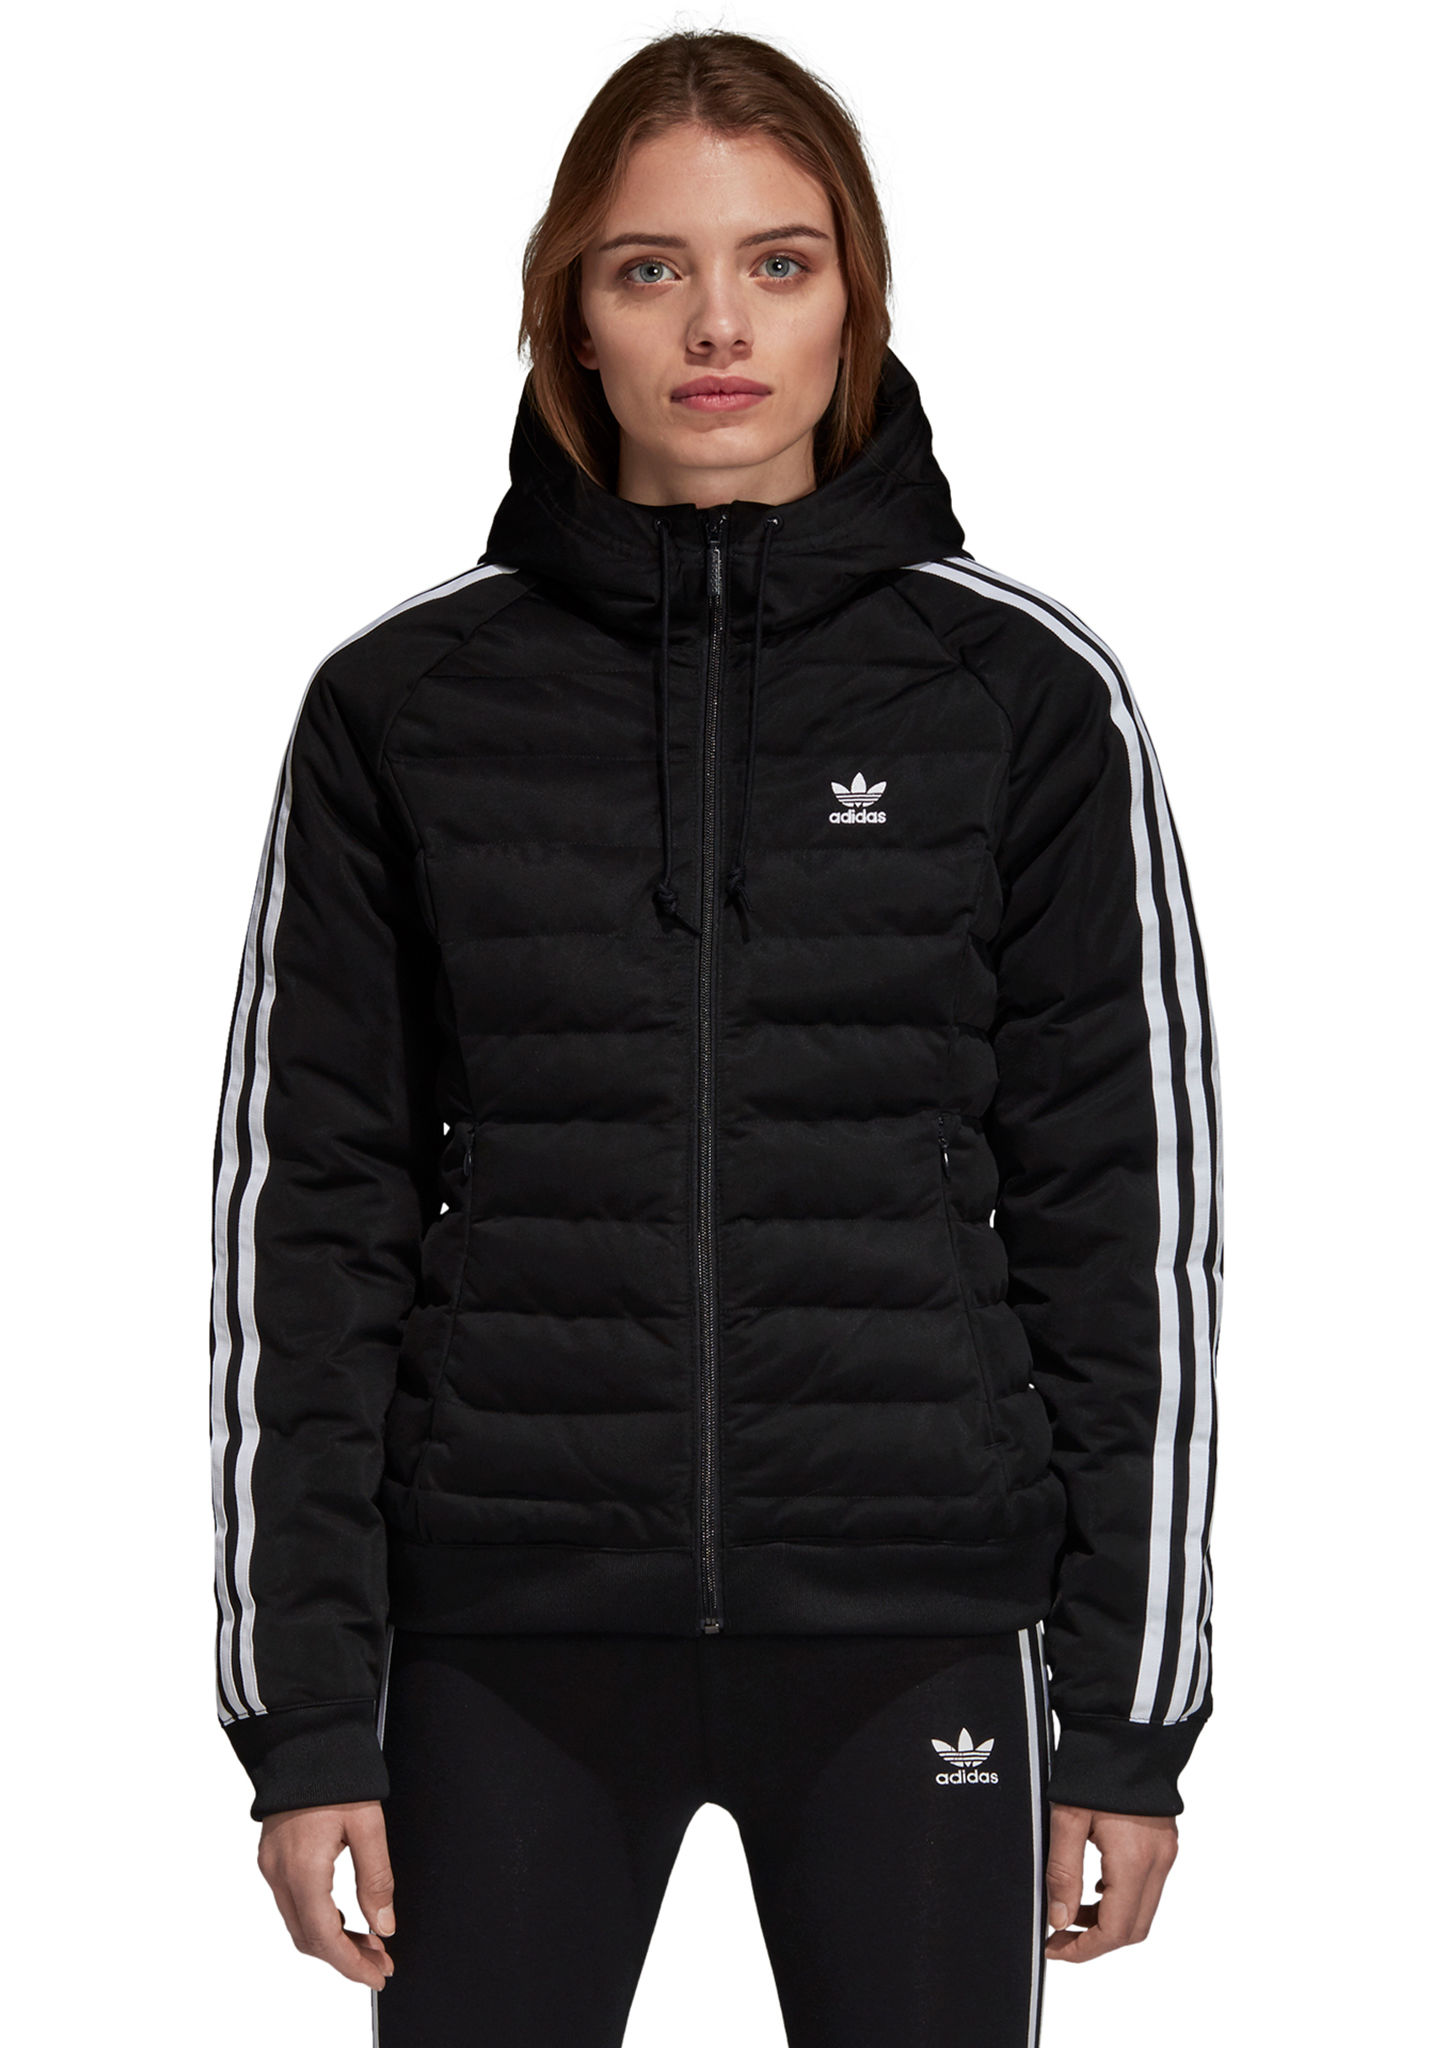 ADIDAS ORIGINALS Slim Jacket for Women Black